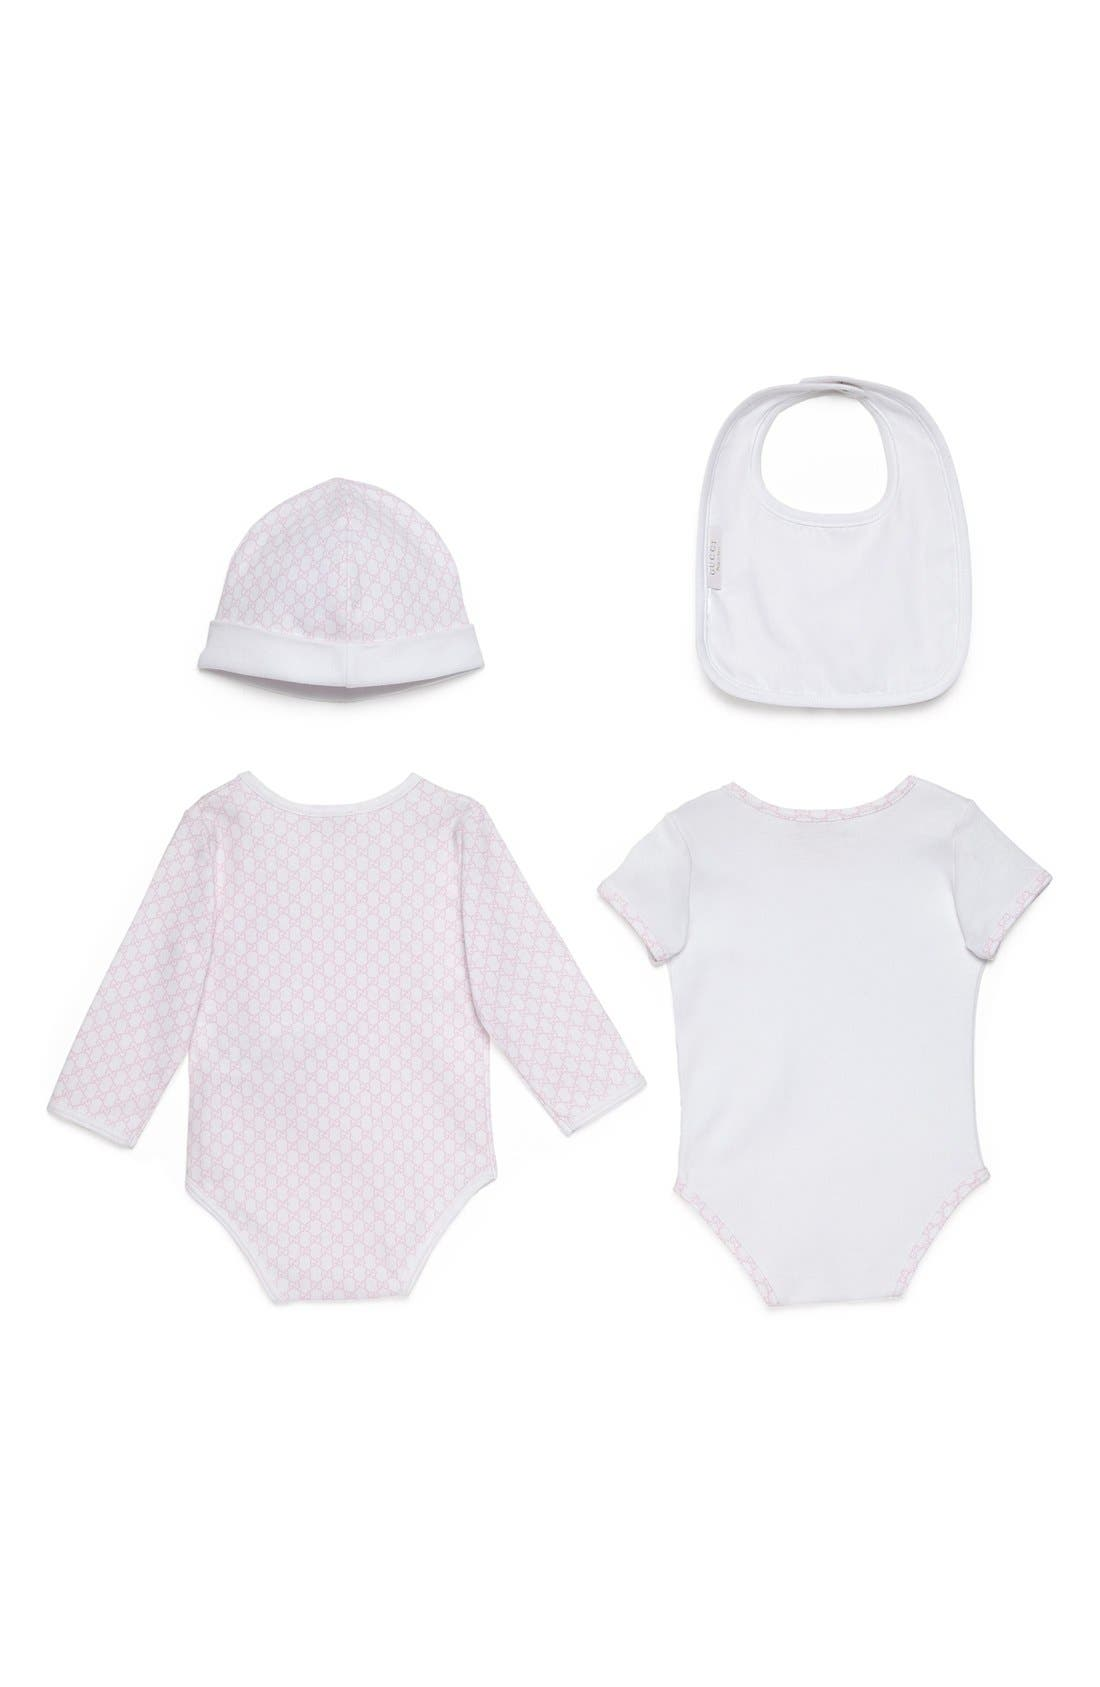 Short Sleeve Bodysuit, Long Sleeve Bodysuit, Hat & Bib Set,                             Alternate thumbnail 2, color,                             Pink